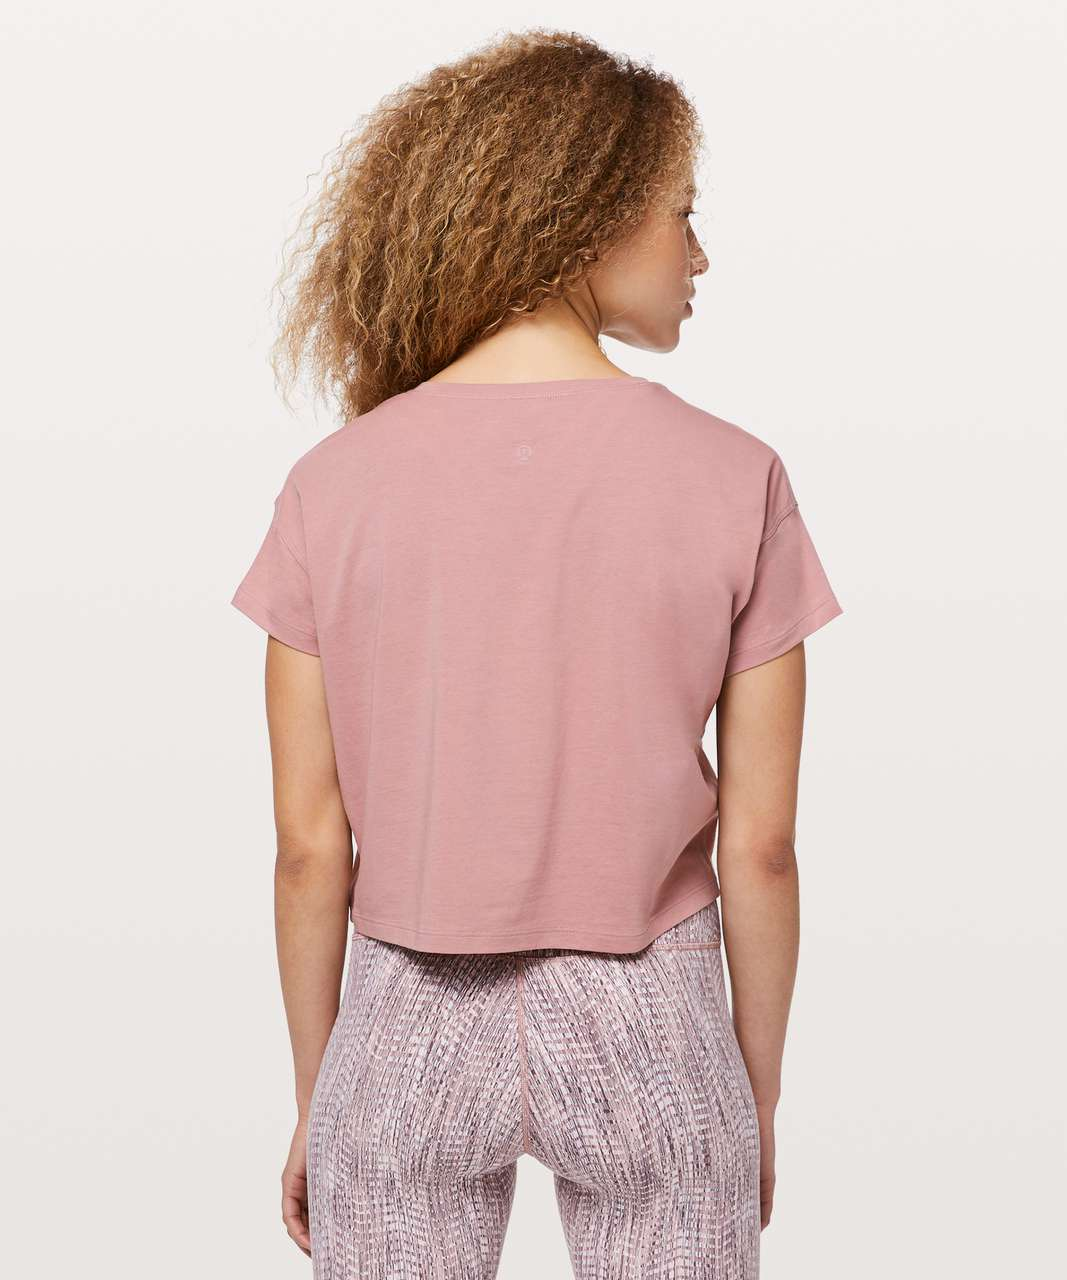 Lululemon Cates Tee - Copper Coil